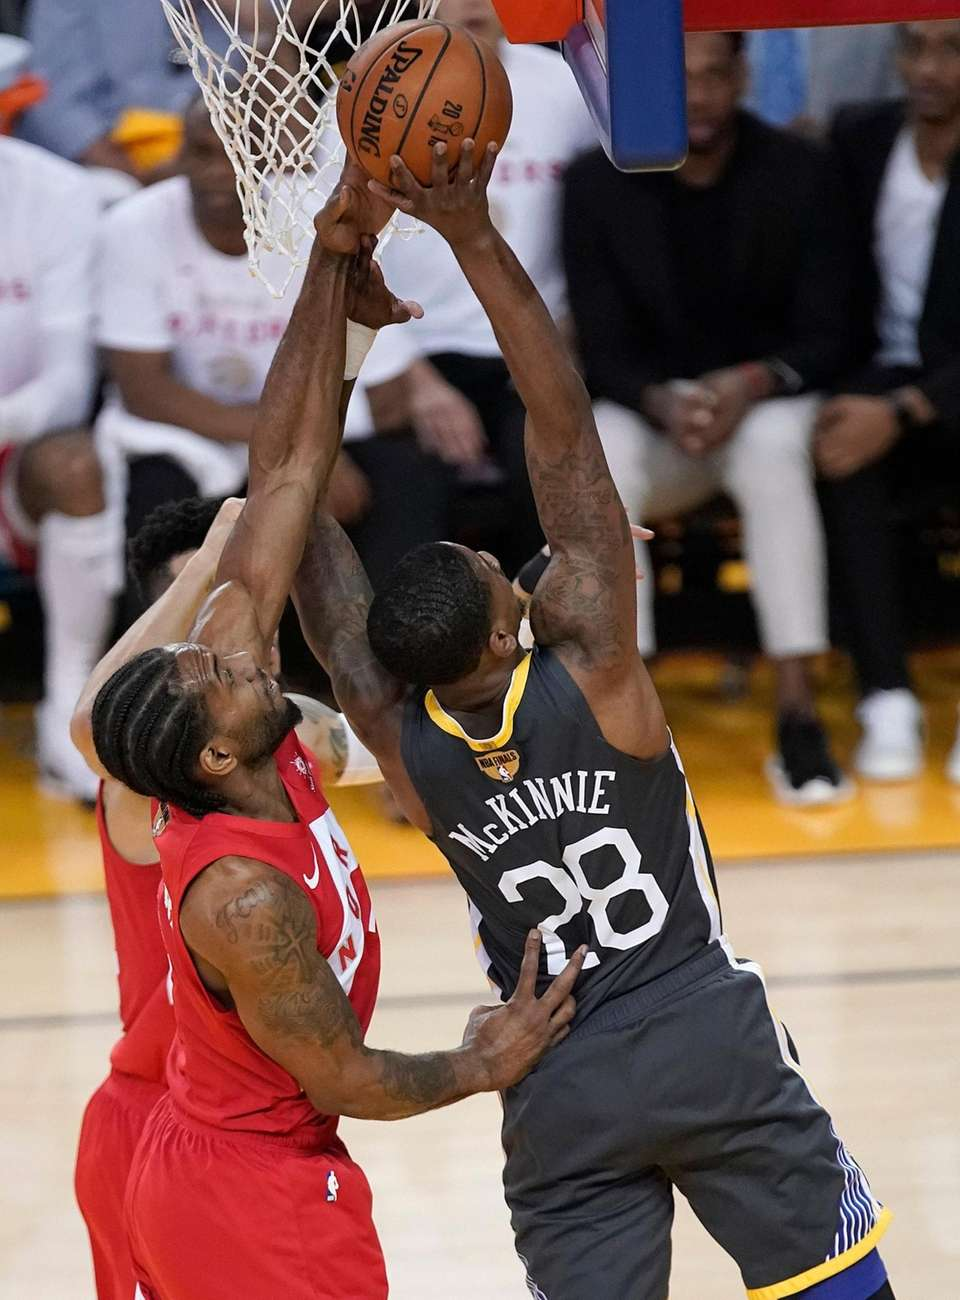 Toronto Raptors forward Kawhi Leonard, left, defends a